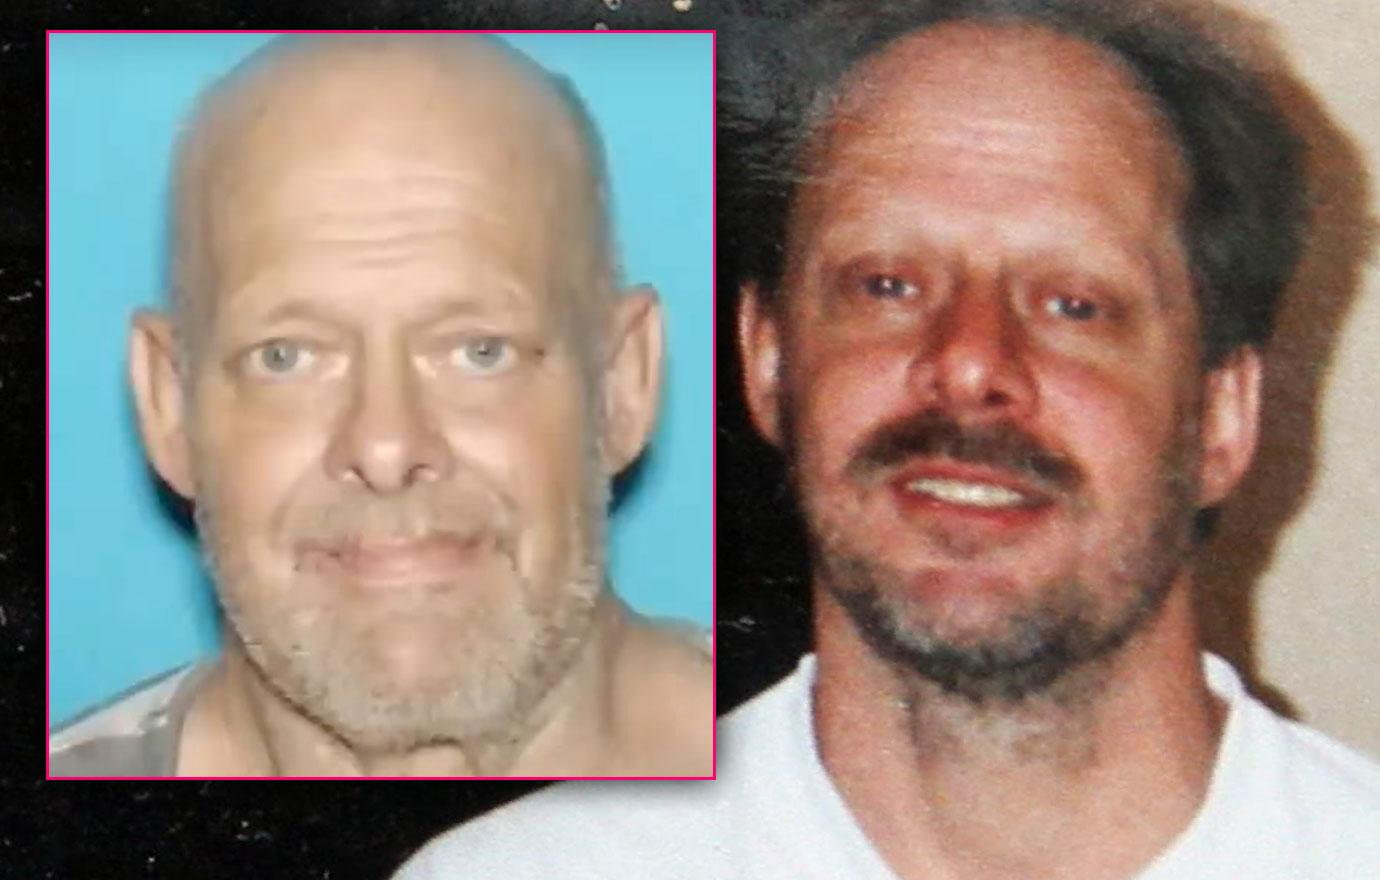 Stephen Paddock Brother Bruce Child Porn Booby Trapped Homes